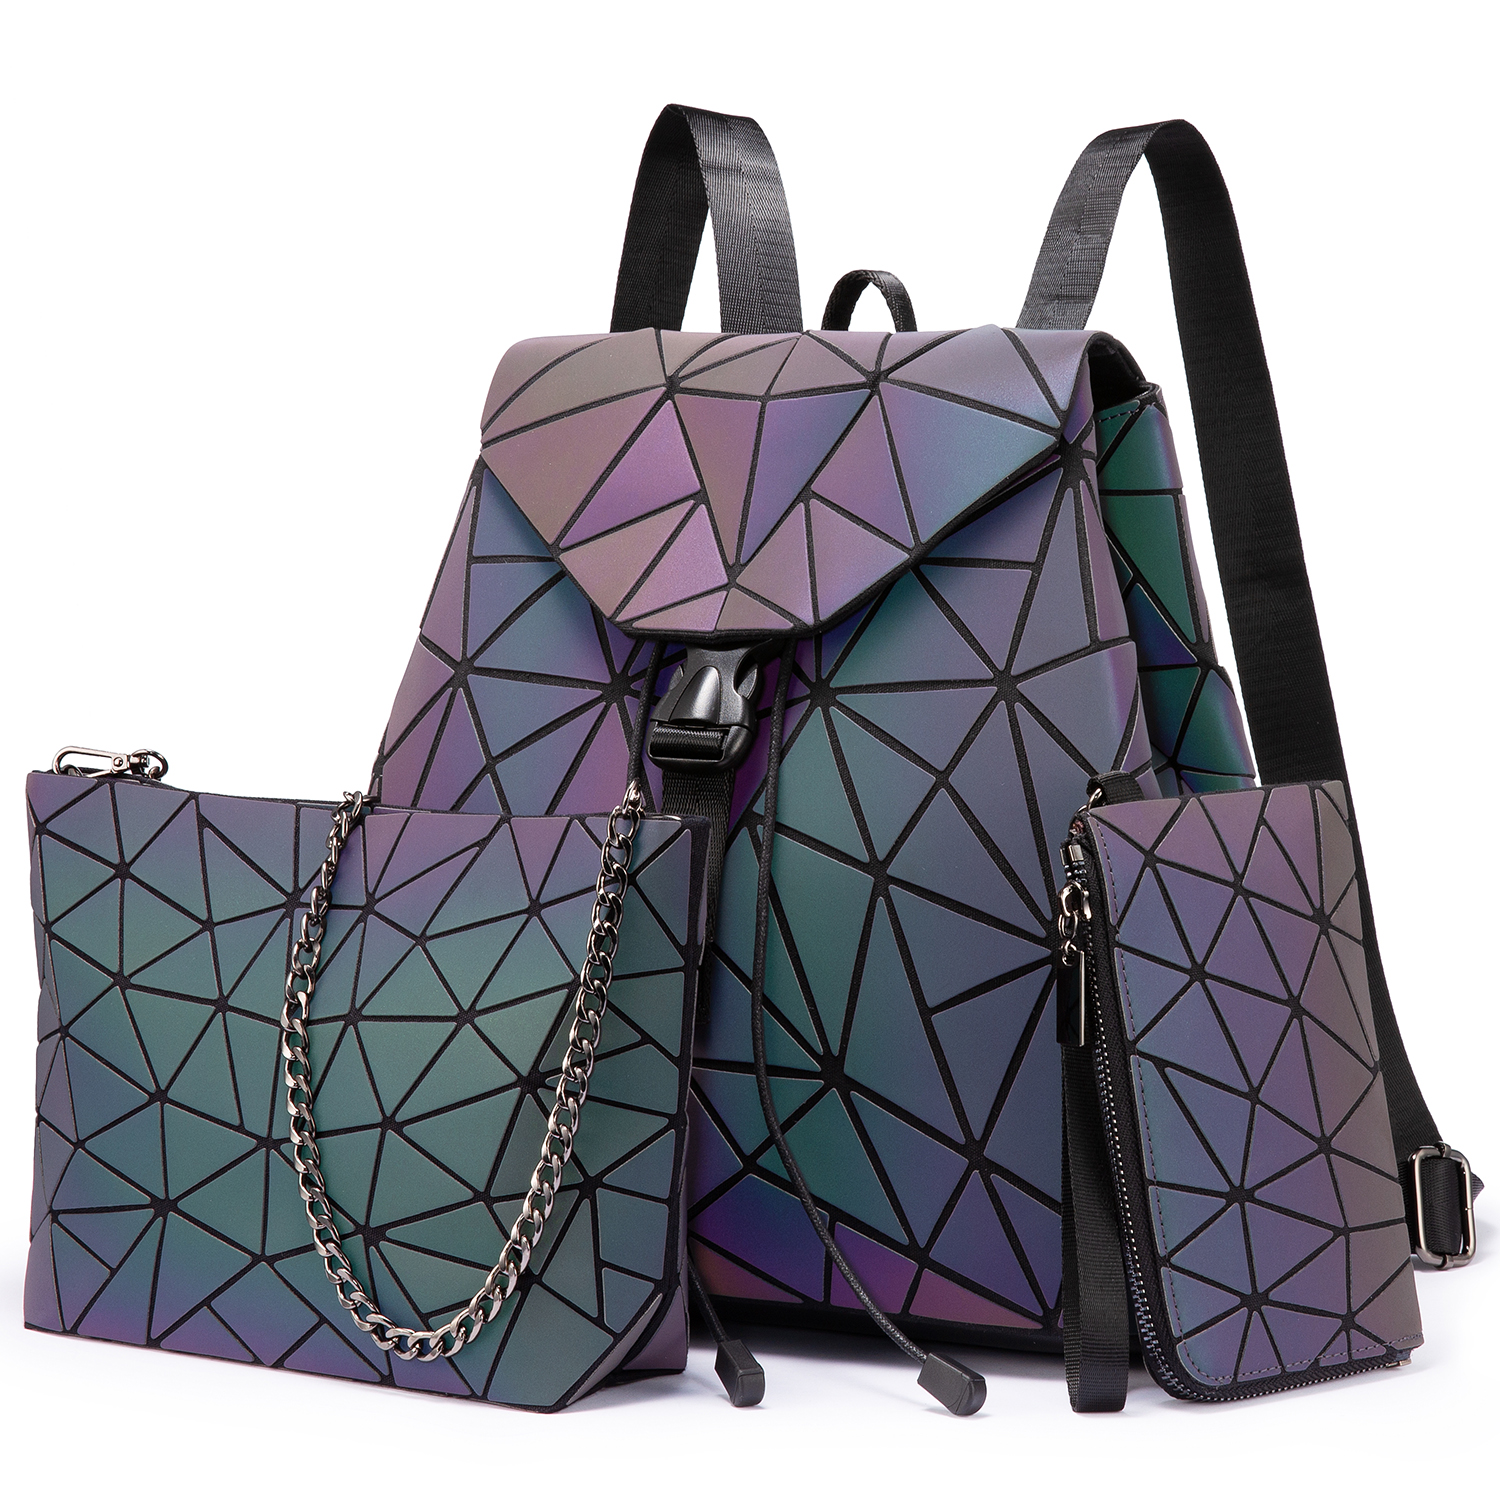 Lovevook Luminous <strong>backpack</strong> sets women geometric pu leather <strong>backpacks</strong> Holographic Reflective ladies messenger bags